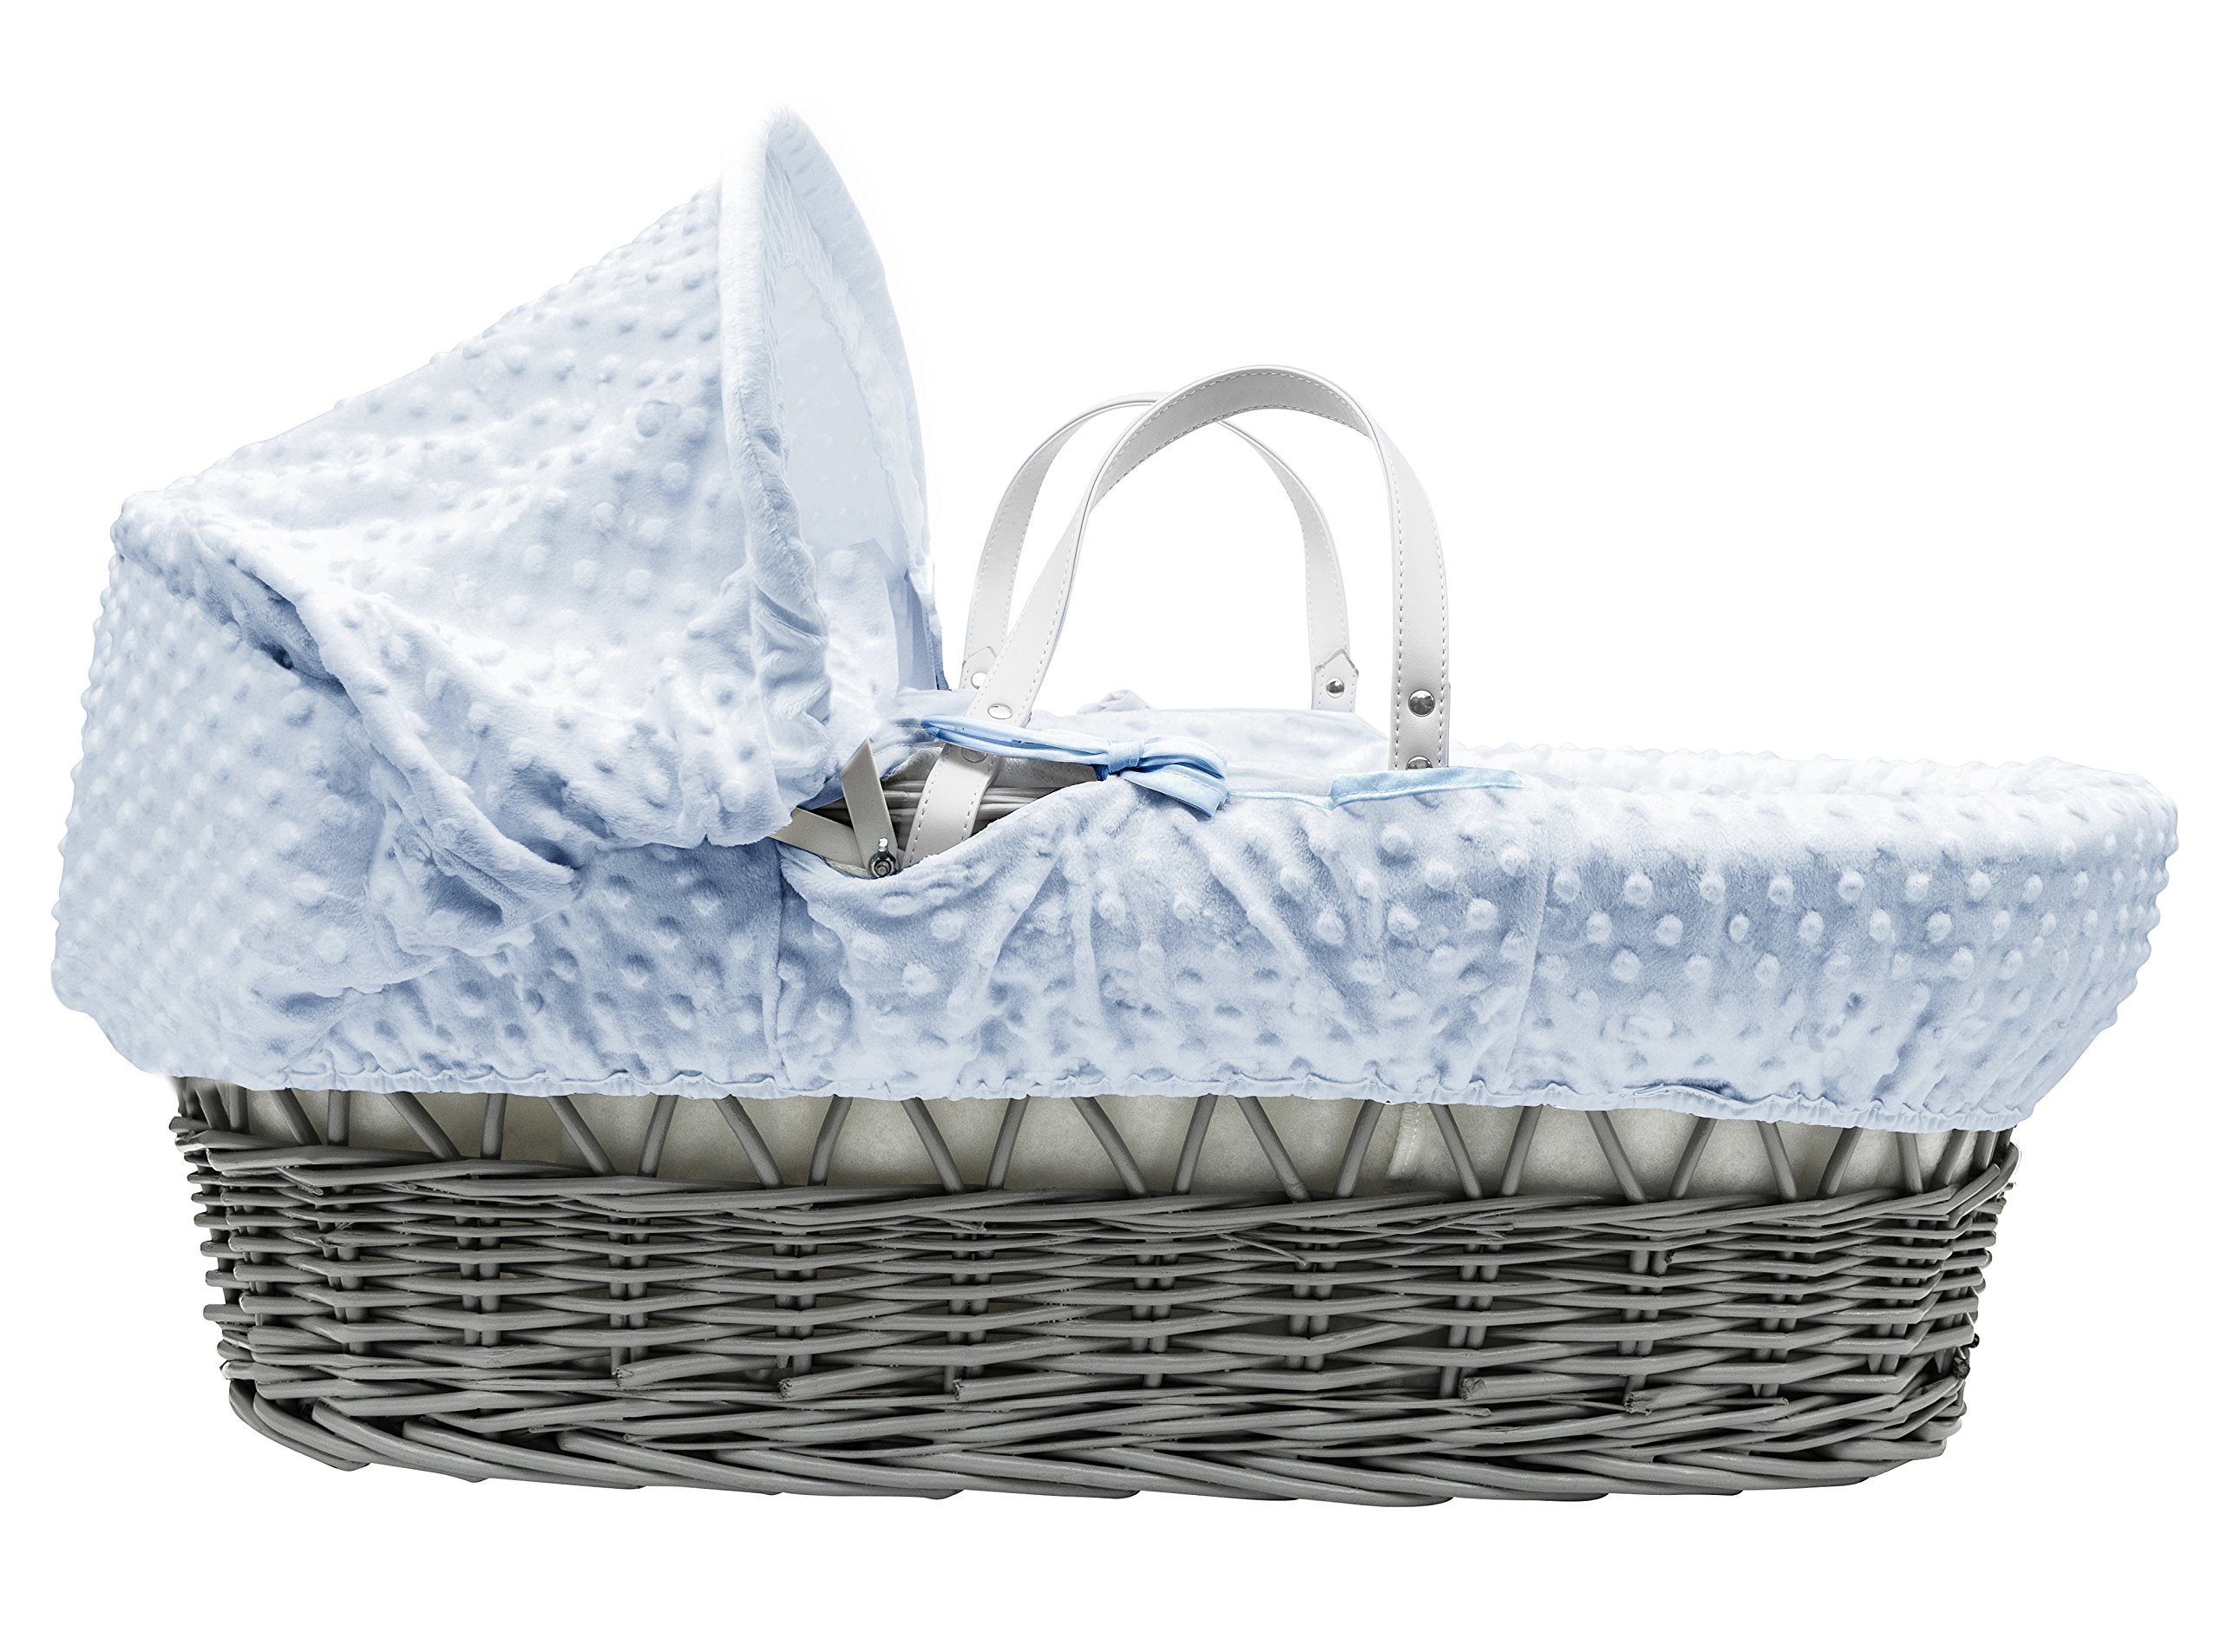 Blue Dimple Grey Wicker Padded Moses Basket & Deluxe Grey Rocking Stand Elegant Baby Suitable from newborn for up to 9kg, this Moses Basket uses Easy-care Poly Cotton with a soft padding surround Suitable from newborn to 9 months It also includes a comfortable mattress and an adjustable hood perfect to create a cosy sleeping space for your precious little one 2